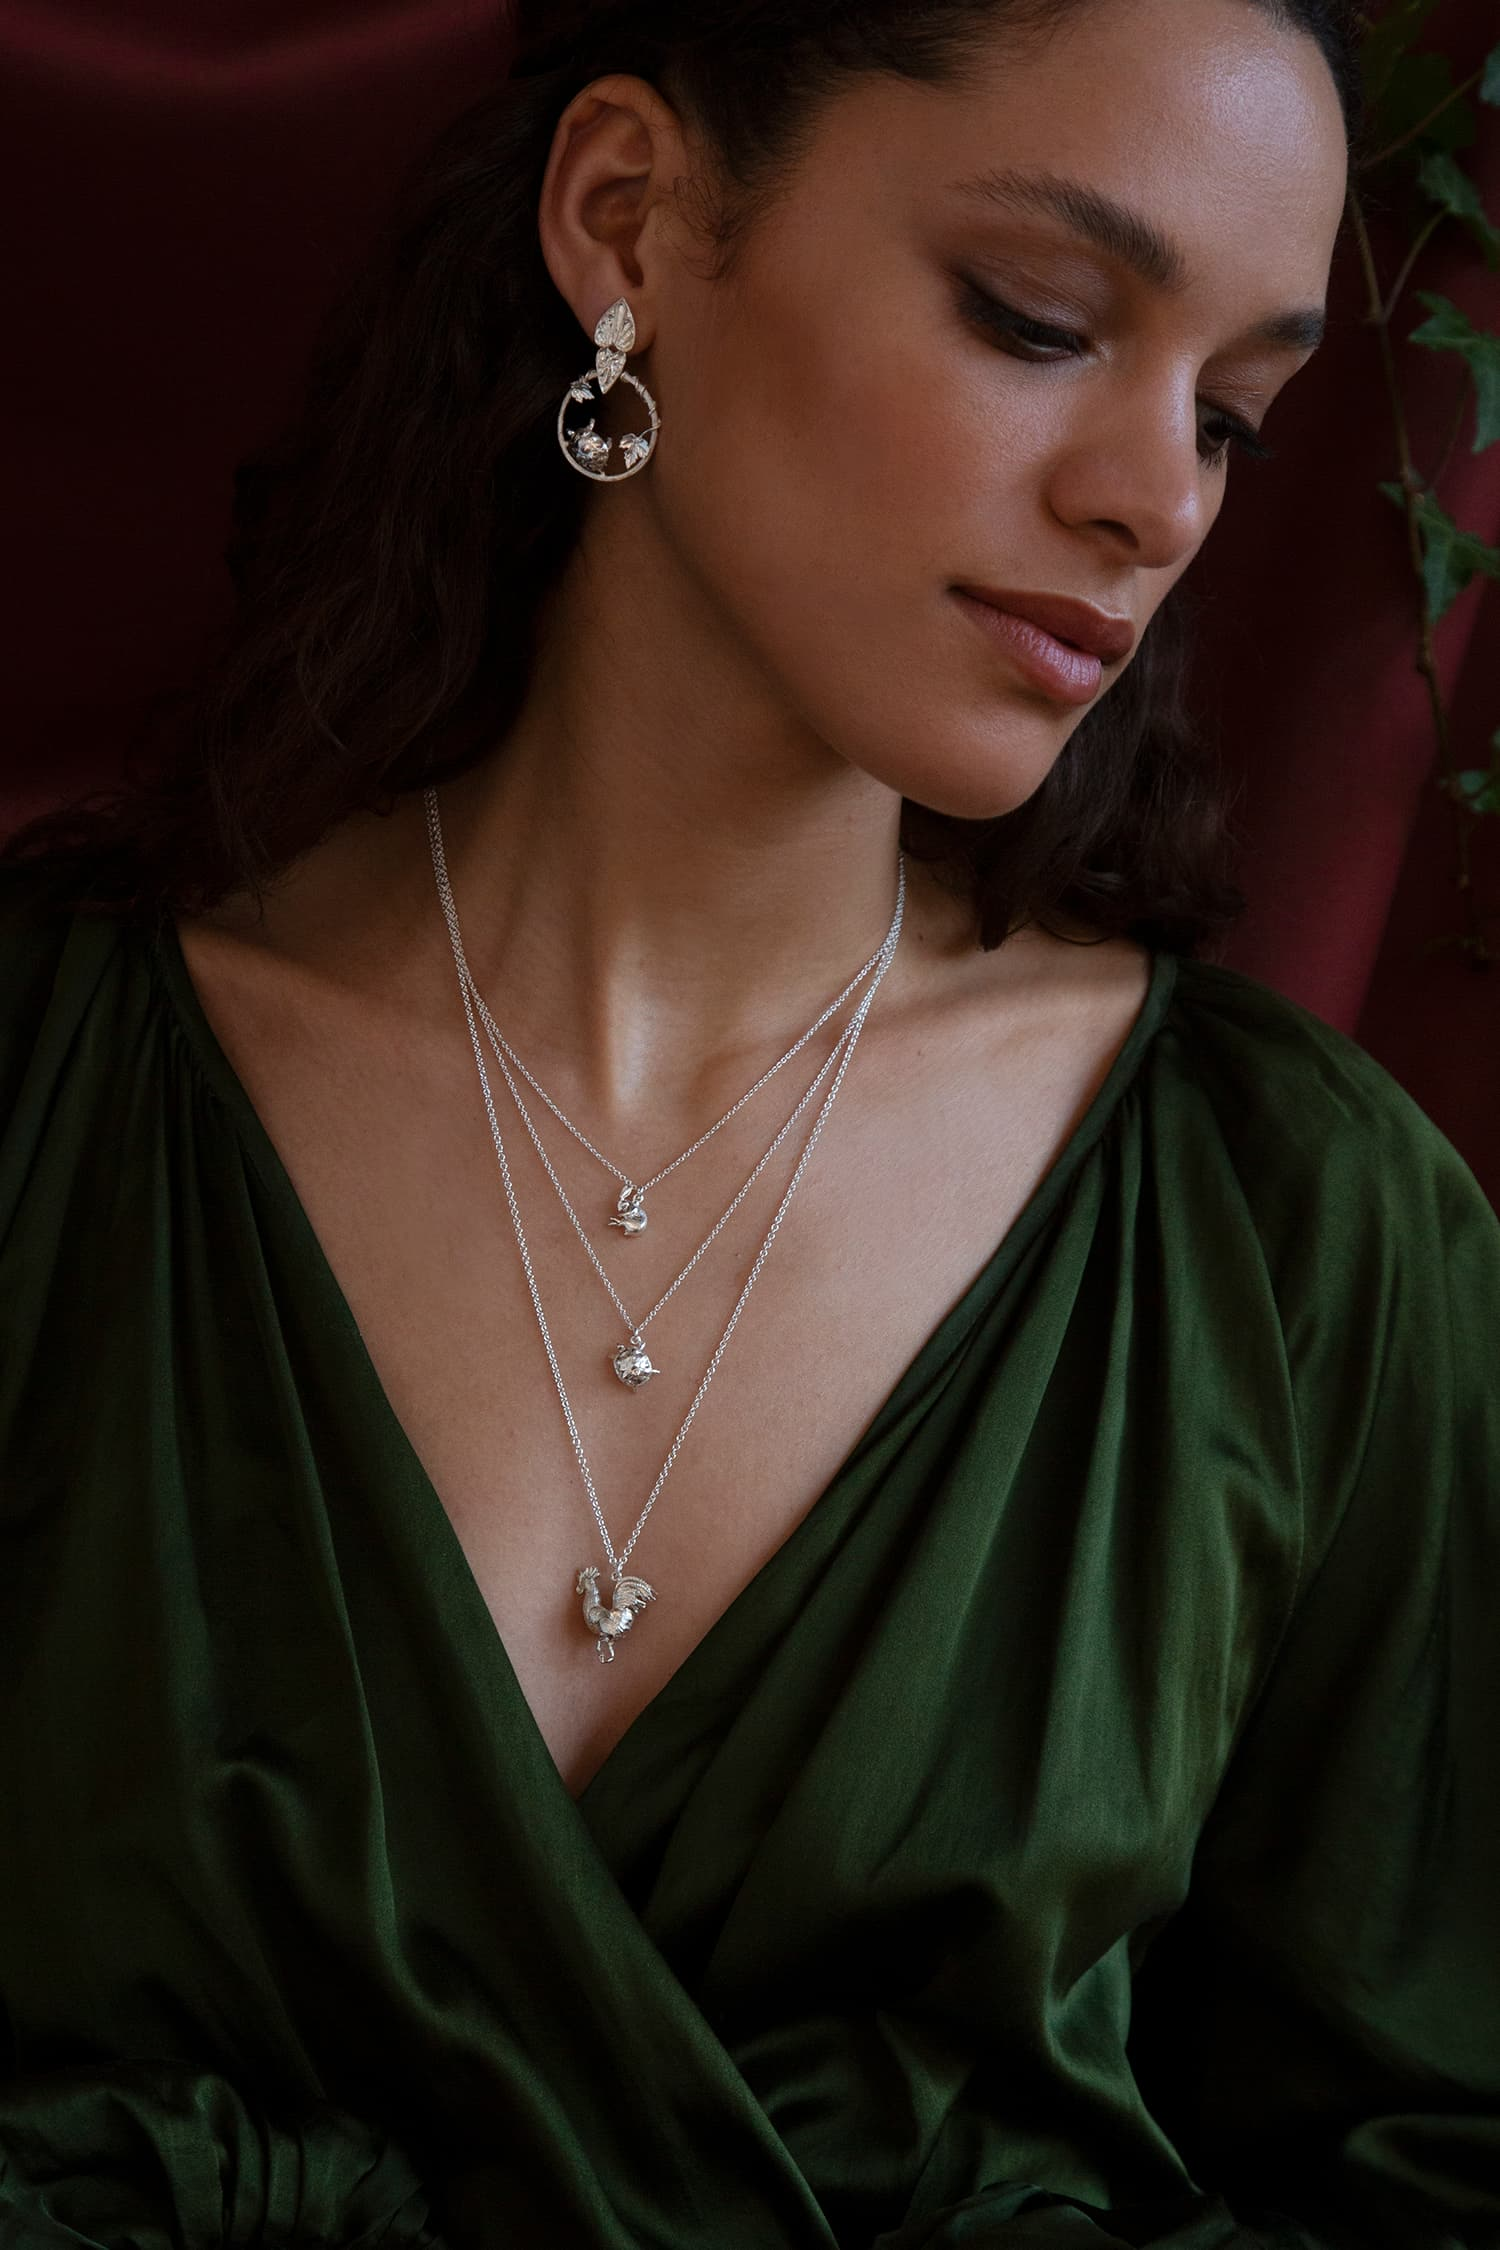 Model wears Fables silver necklaces and earrings featuring Hare and Tortoise, and a large rooster.